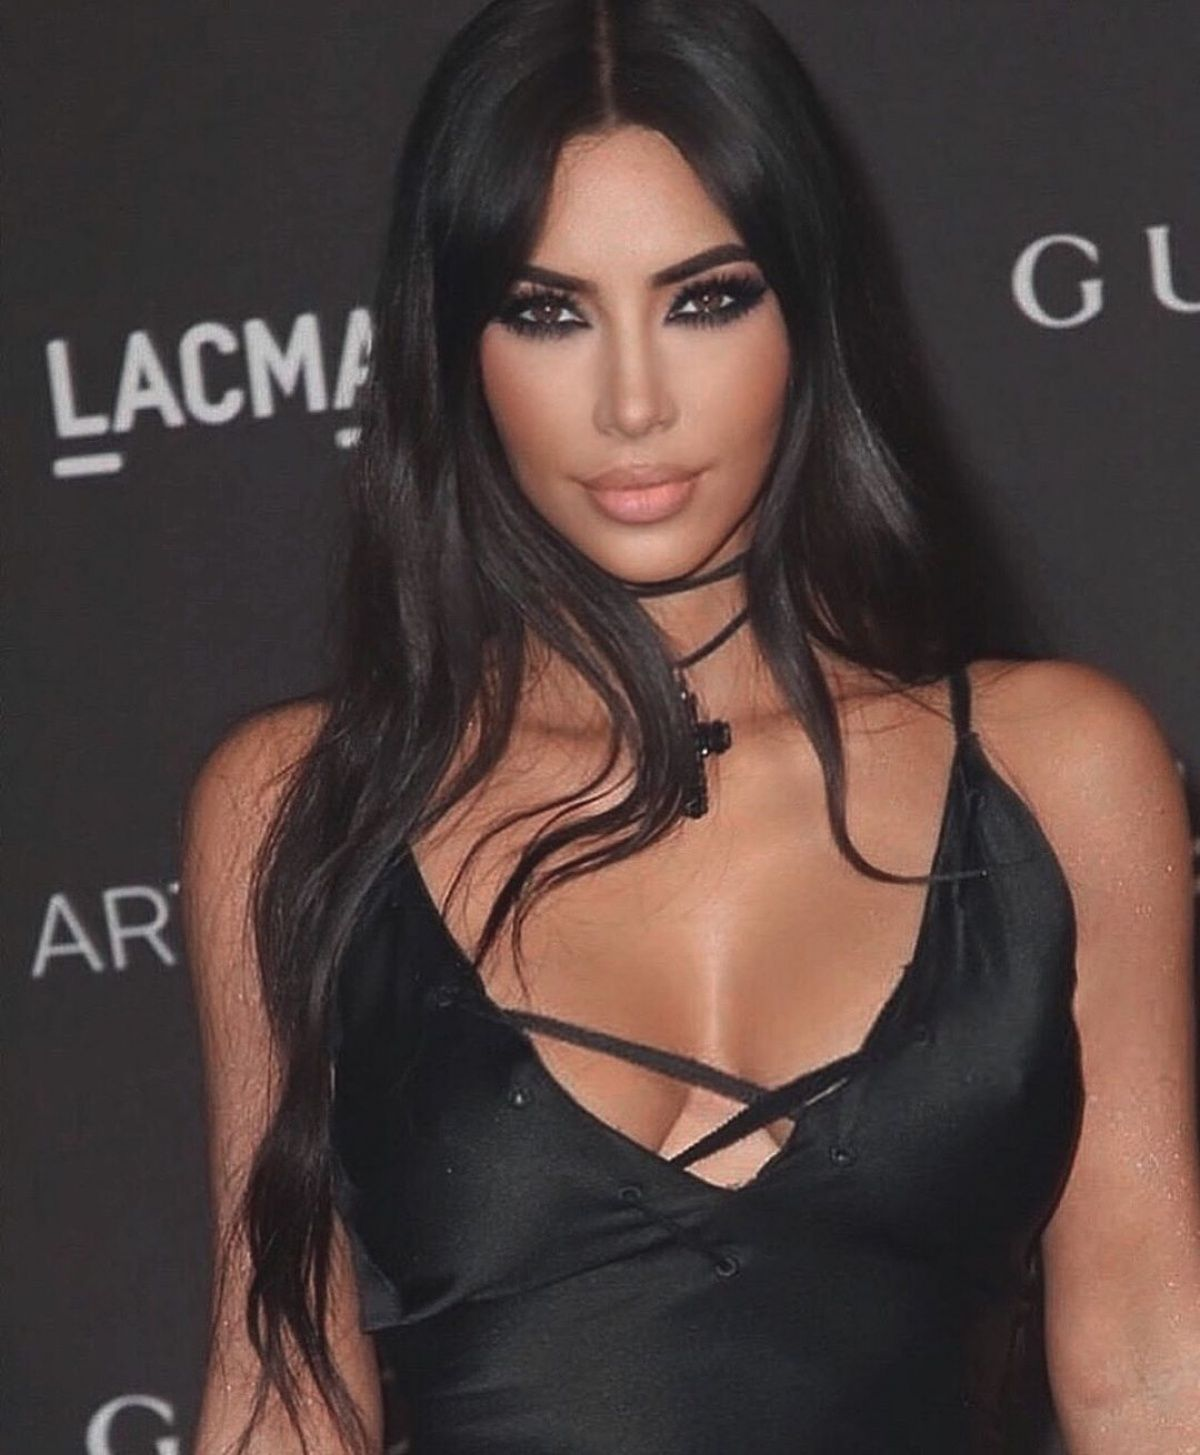 Kim Kardashian Fourth Baby With Kanye West Will Even Family Out Kim Kardashian Says Her Fam Kim Kardashian Makeup Kim Kardashian Wedding Kardashian Makeup